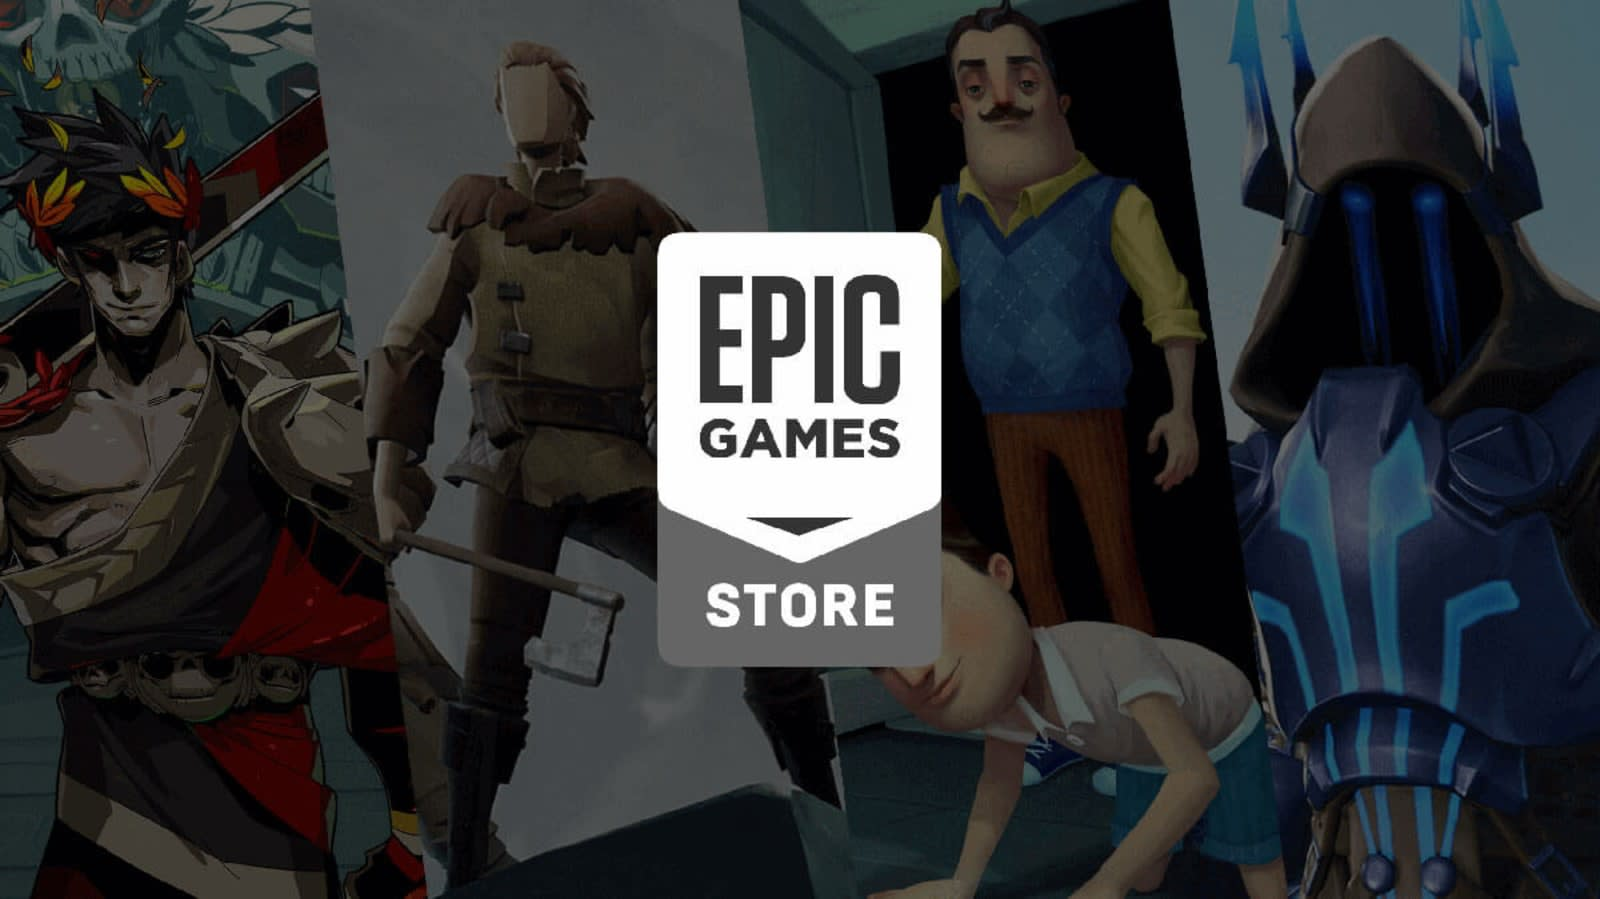 The Epic Games Store is the best thing that could happen to Steam